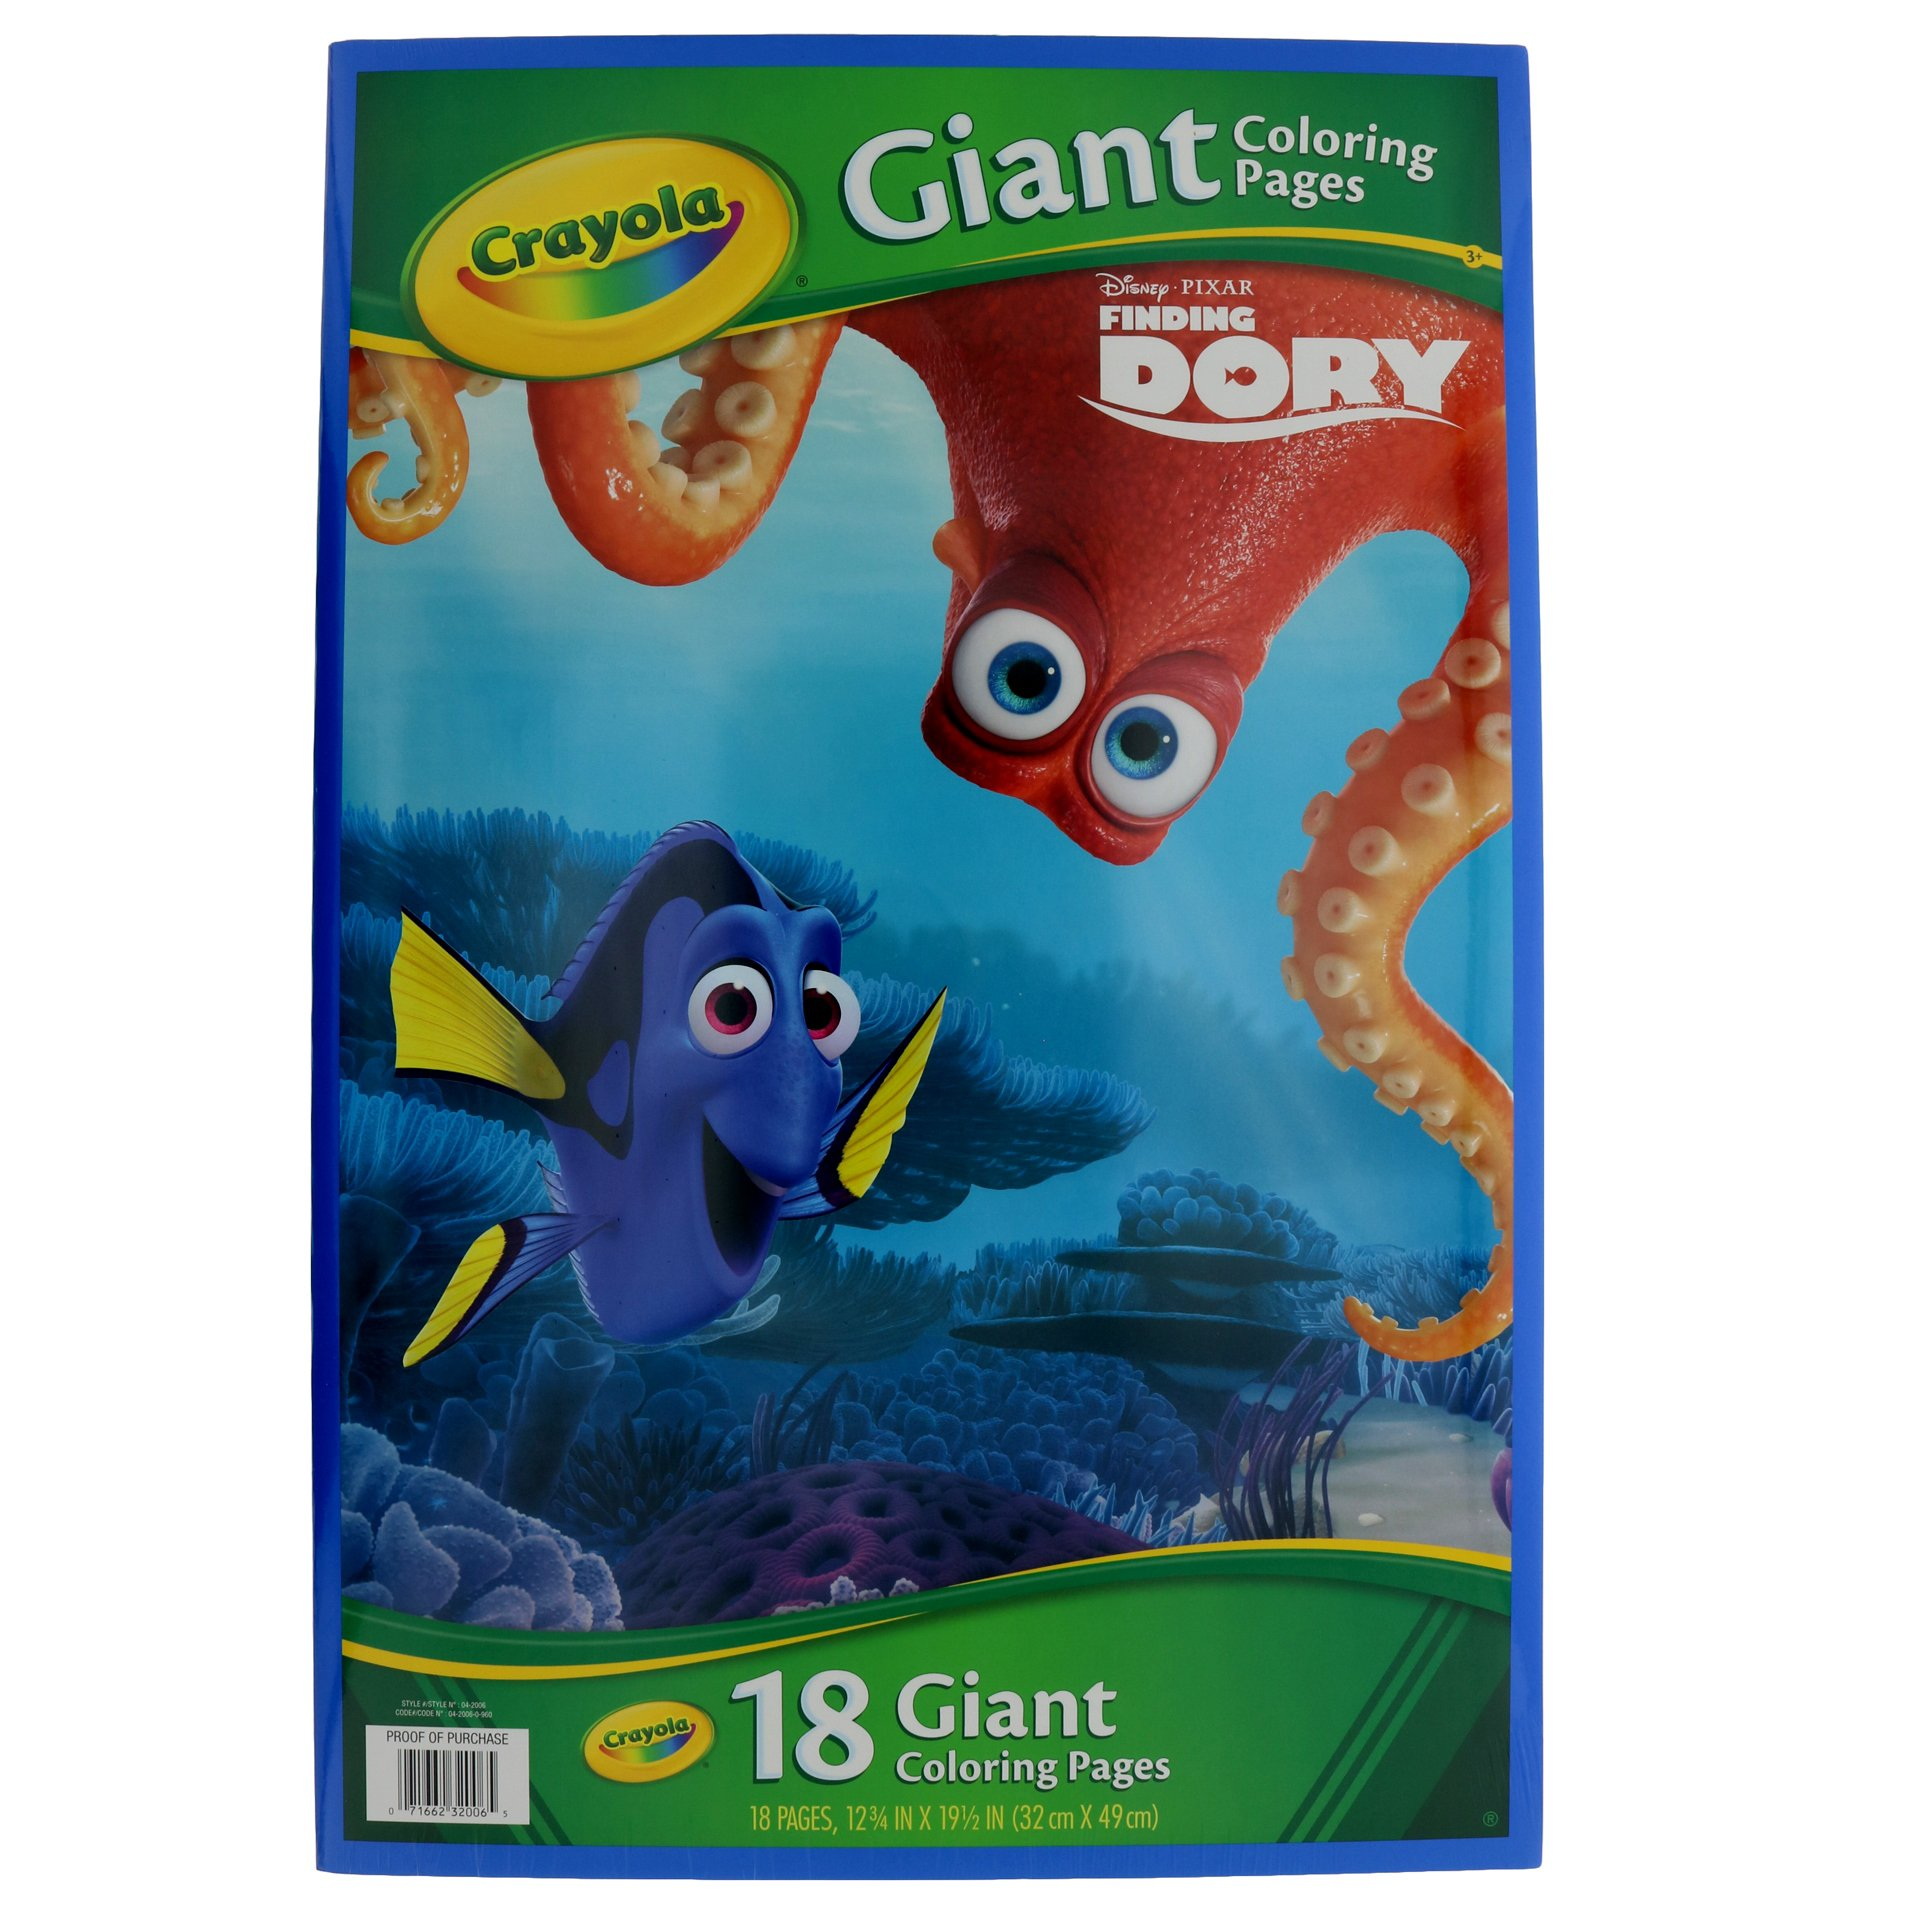 Crayola Giant Coloring Pages Dory - Shop Books & Coloring at HEB